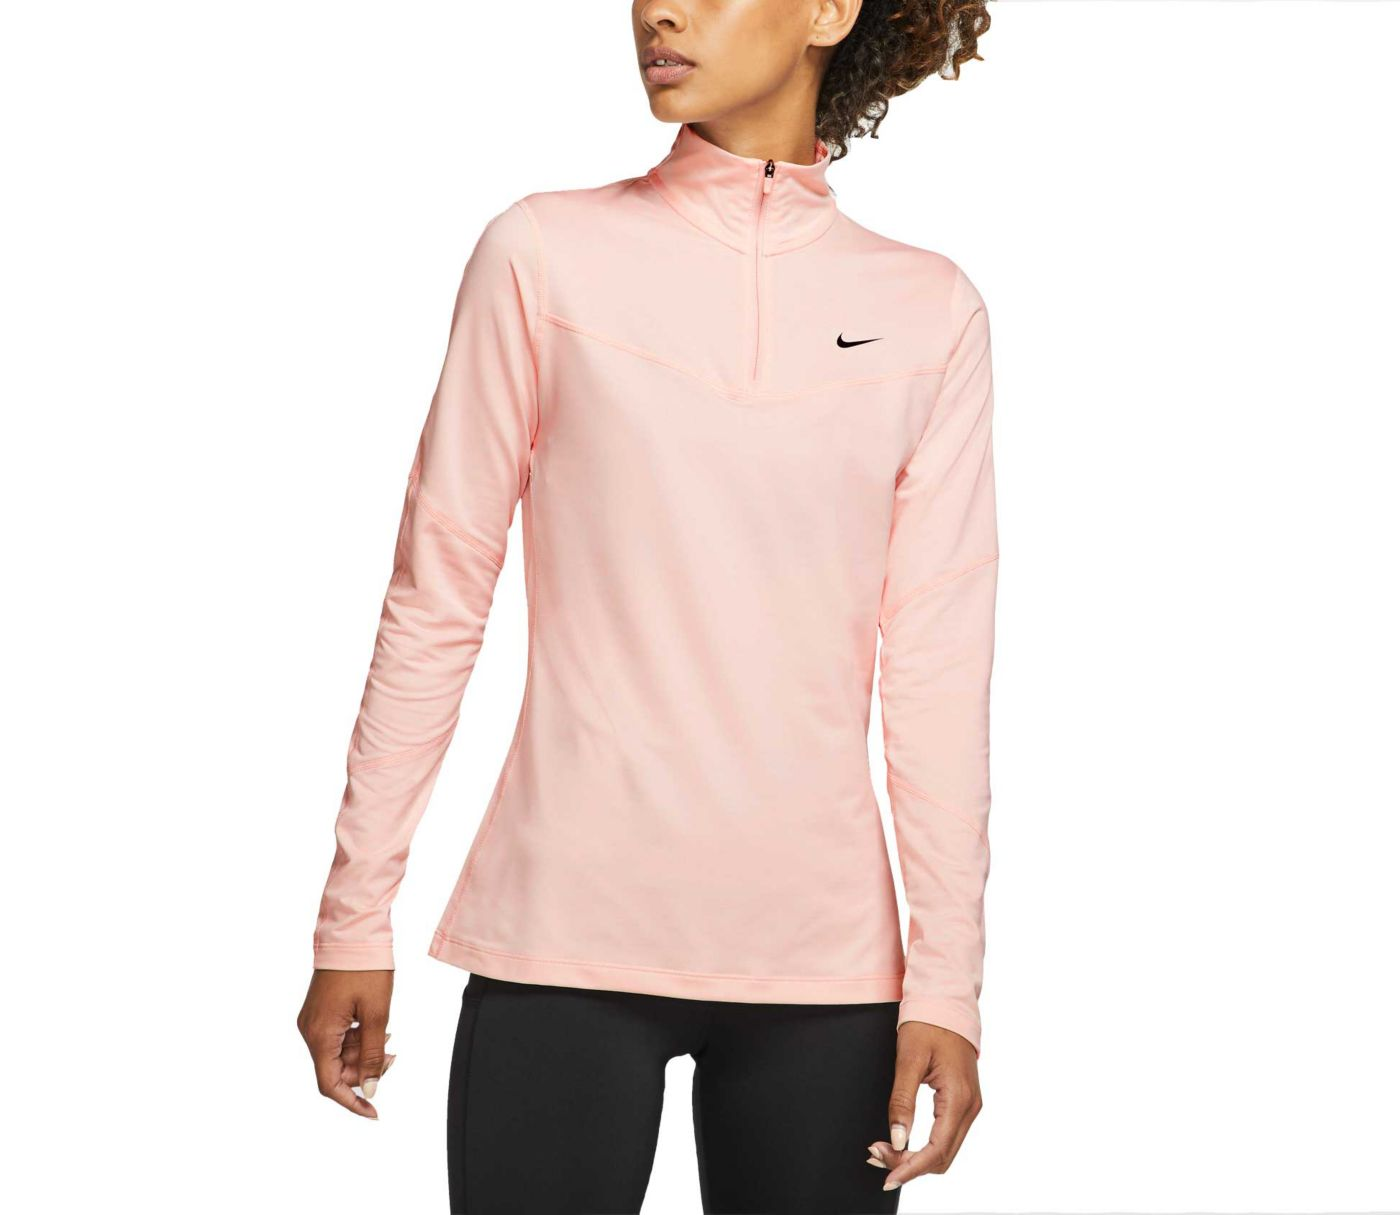 Nike Women's Pro Warm Long Sleeve Top